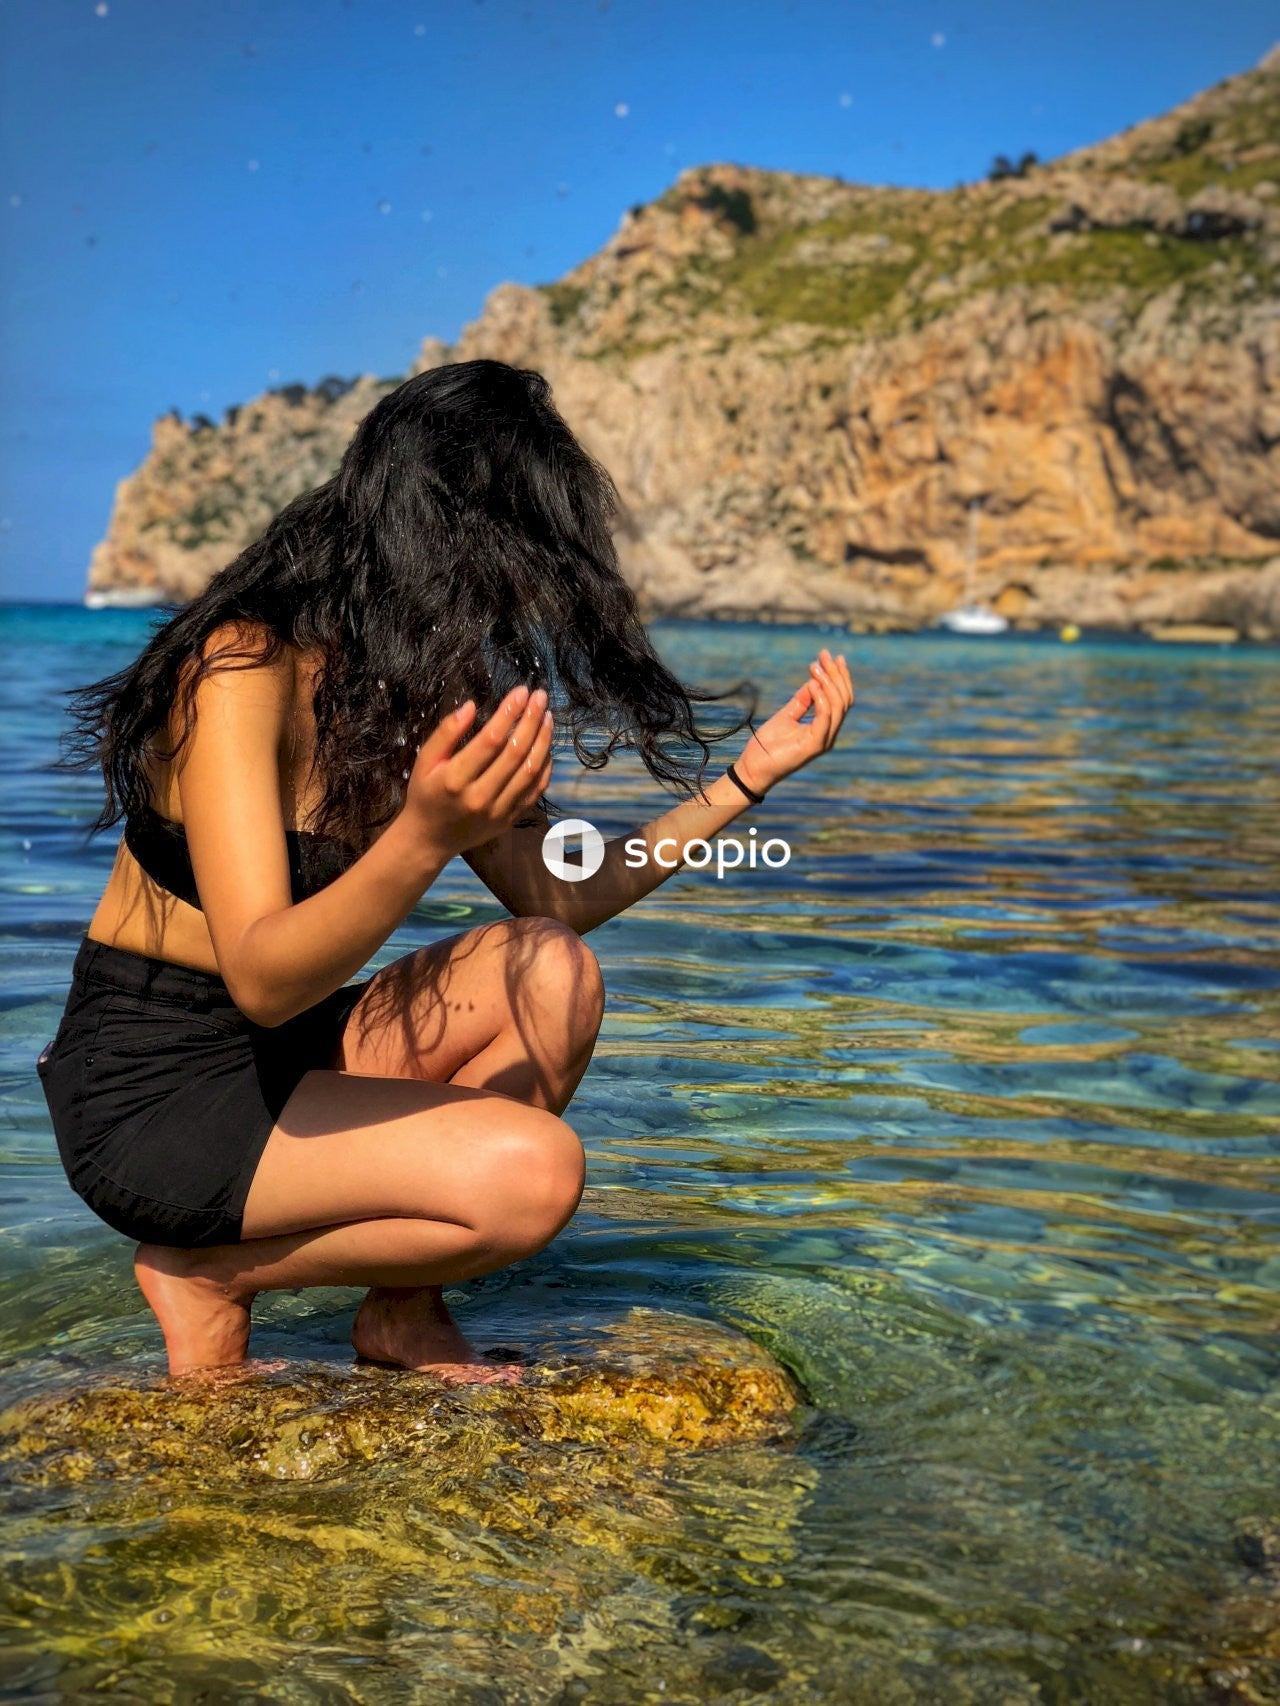 Woman in black shorts sitting on rock in water